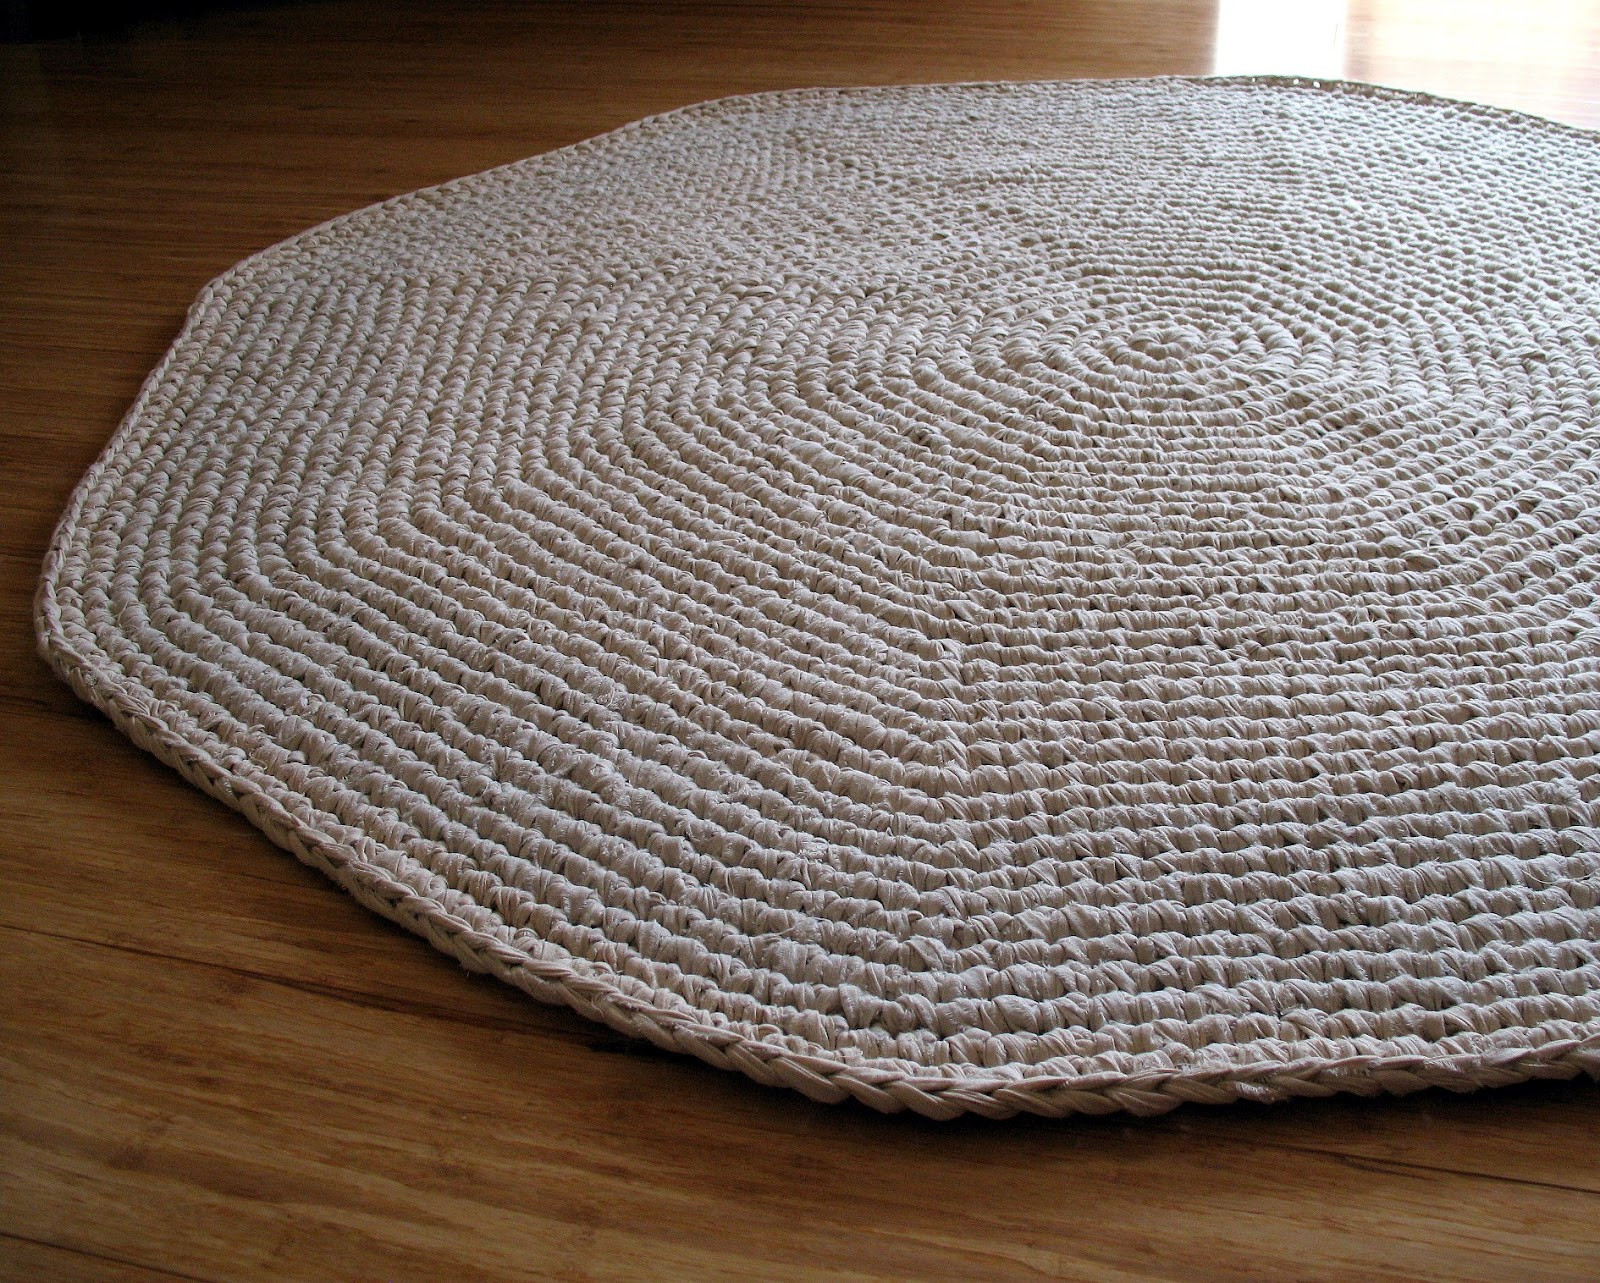 Crochet Rug Patterns Luxury Eclectic Me Calico Crochet Rug & Pattern Of Amazing 41 Images Crochet Rug Patterns